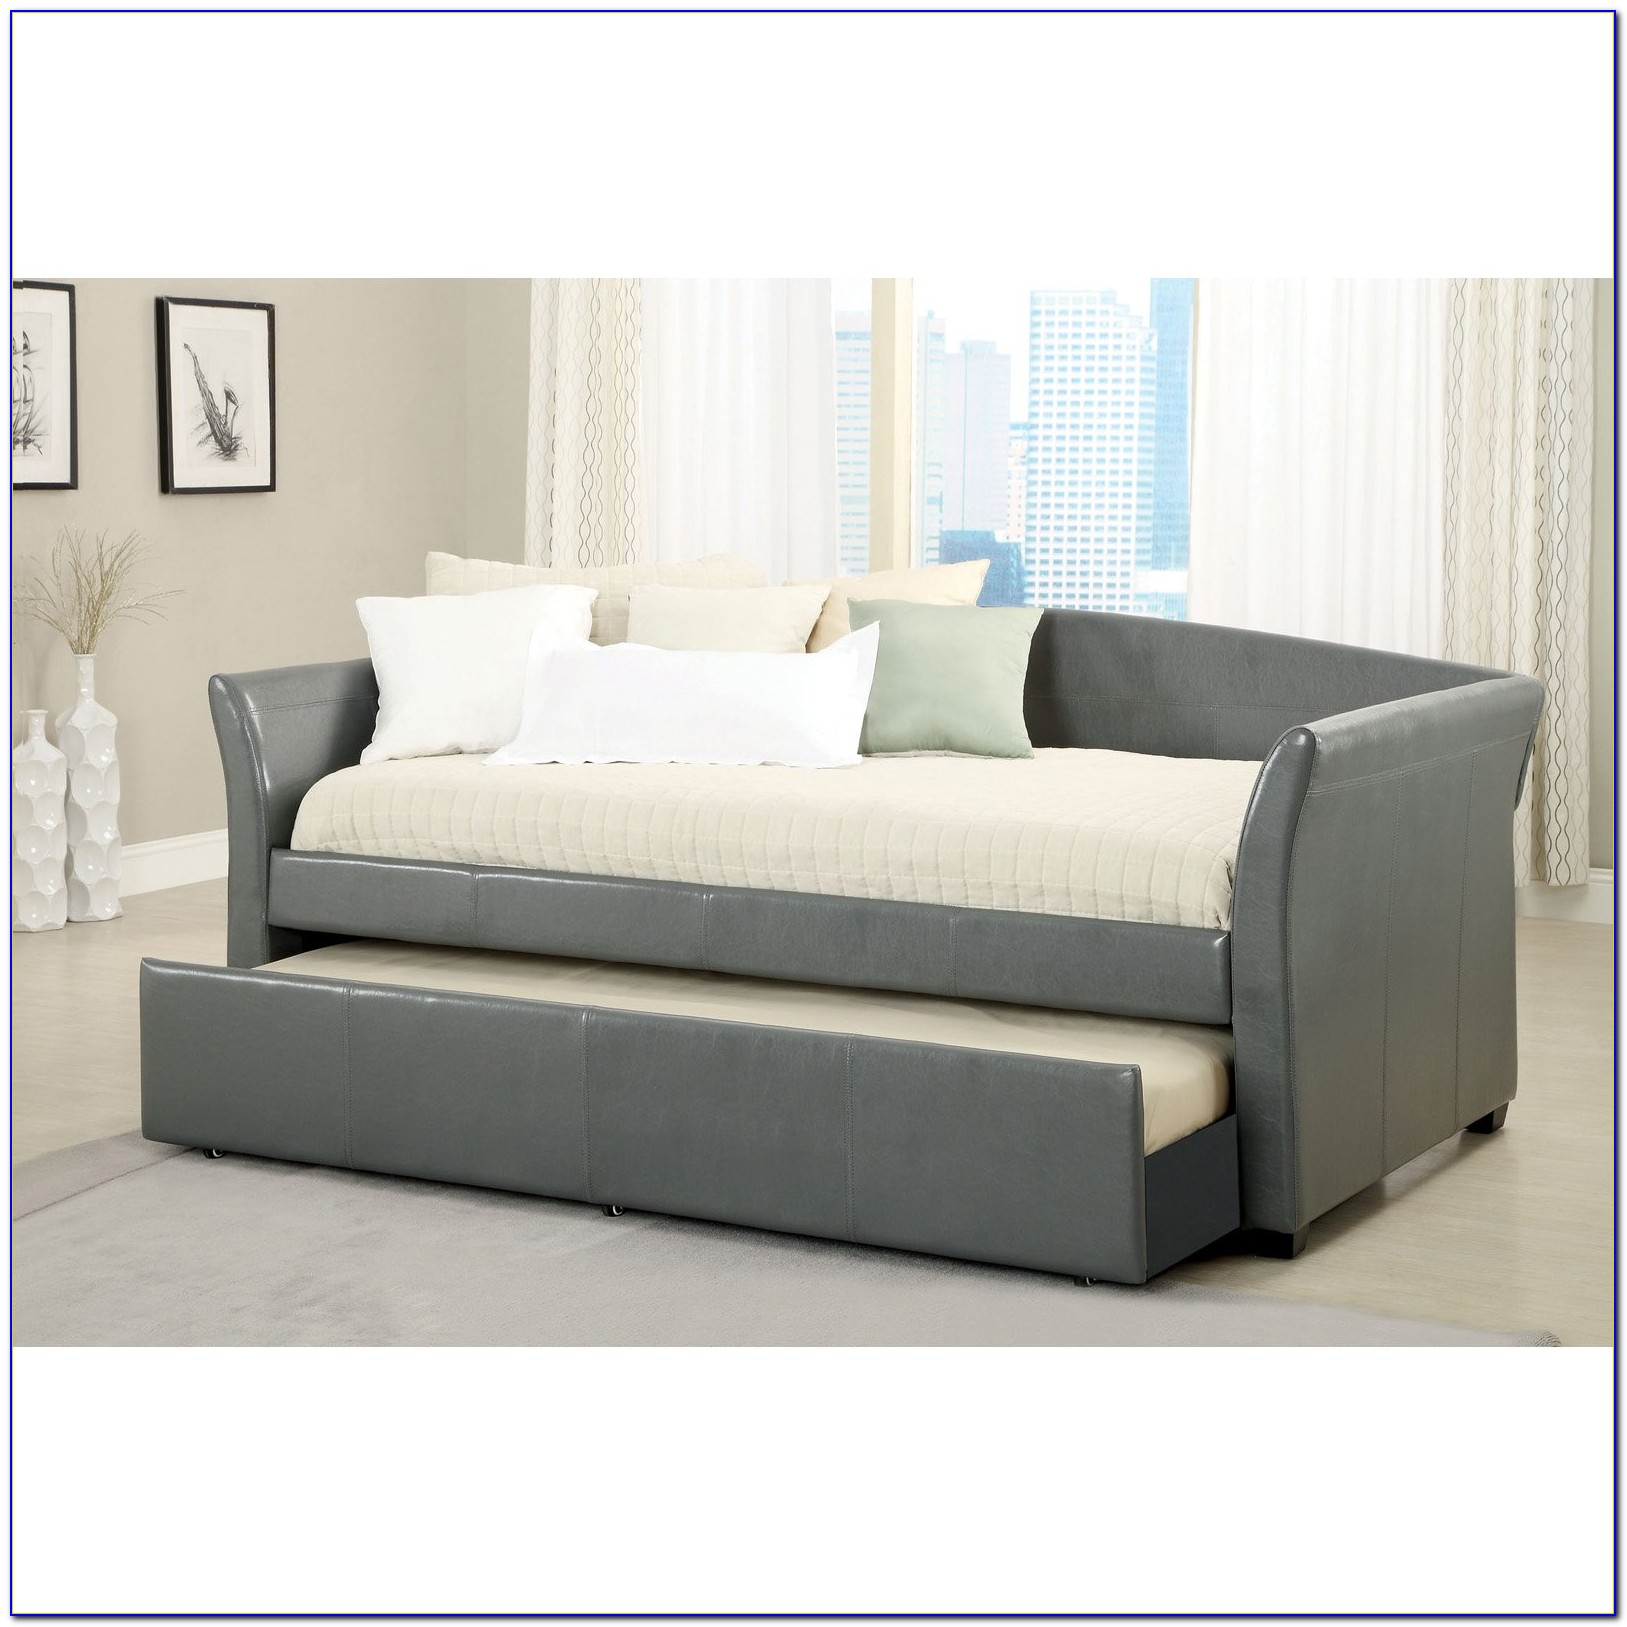 Daybeds With Trundle And Mattresses